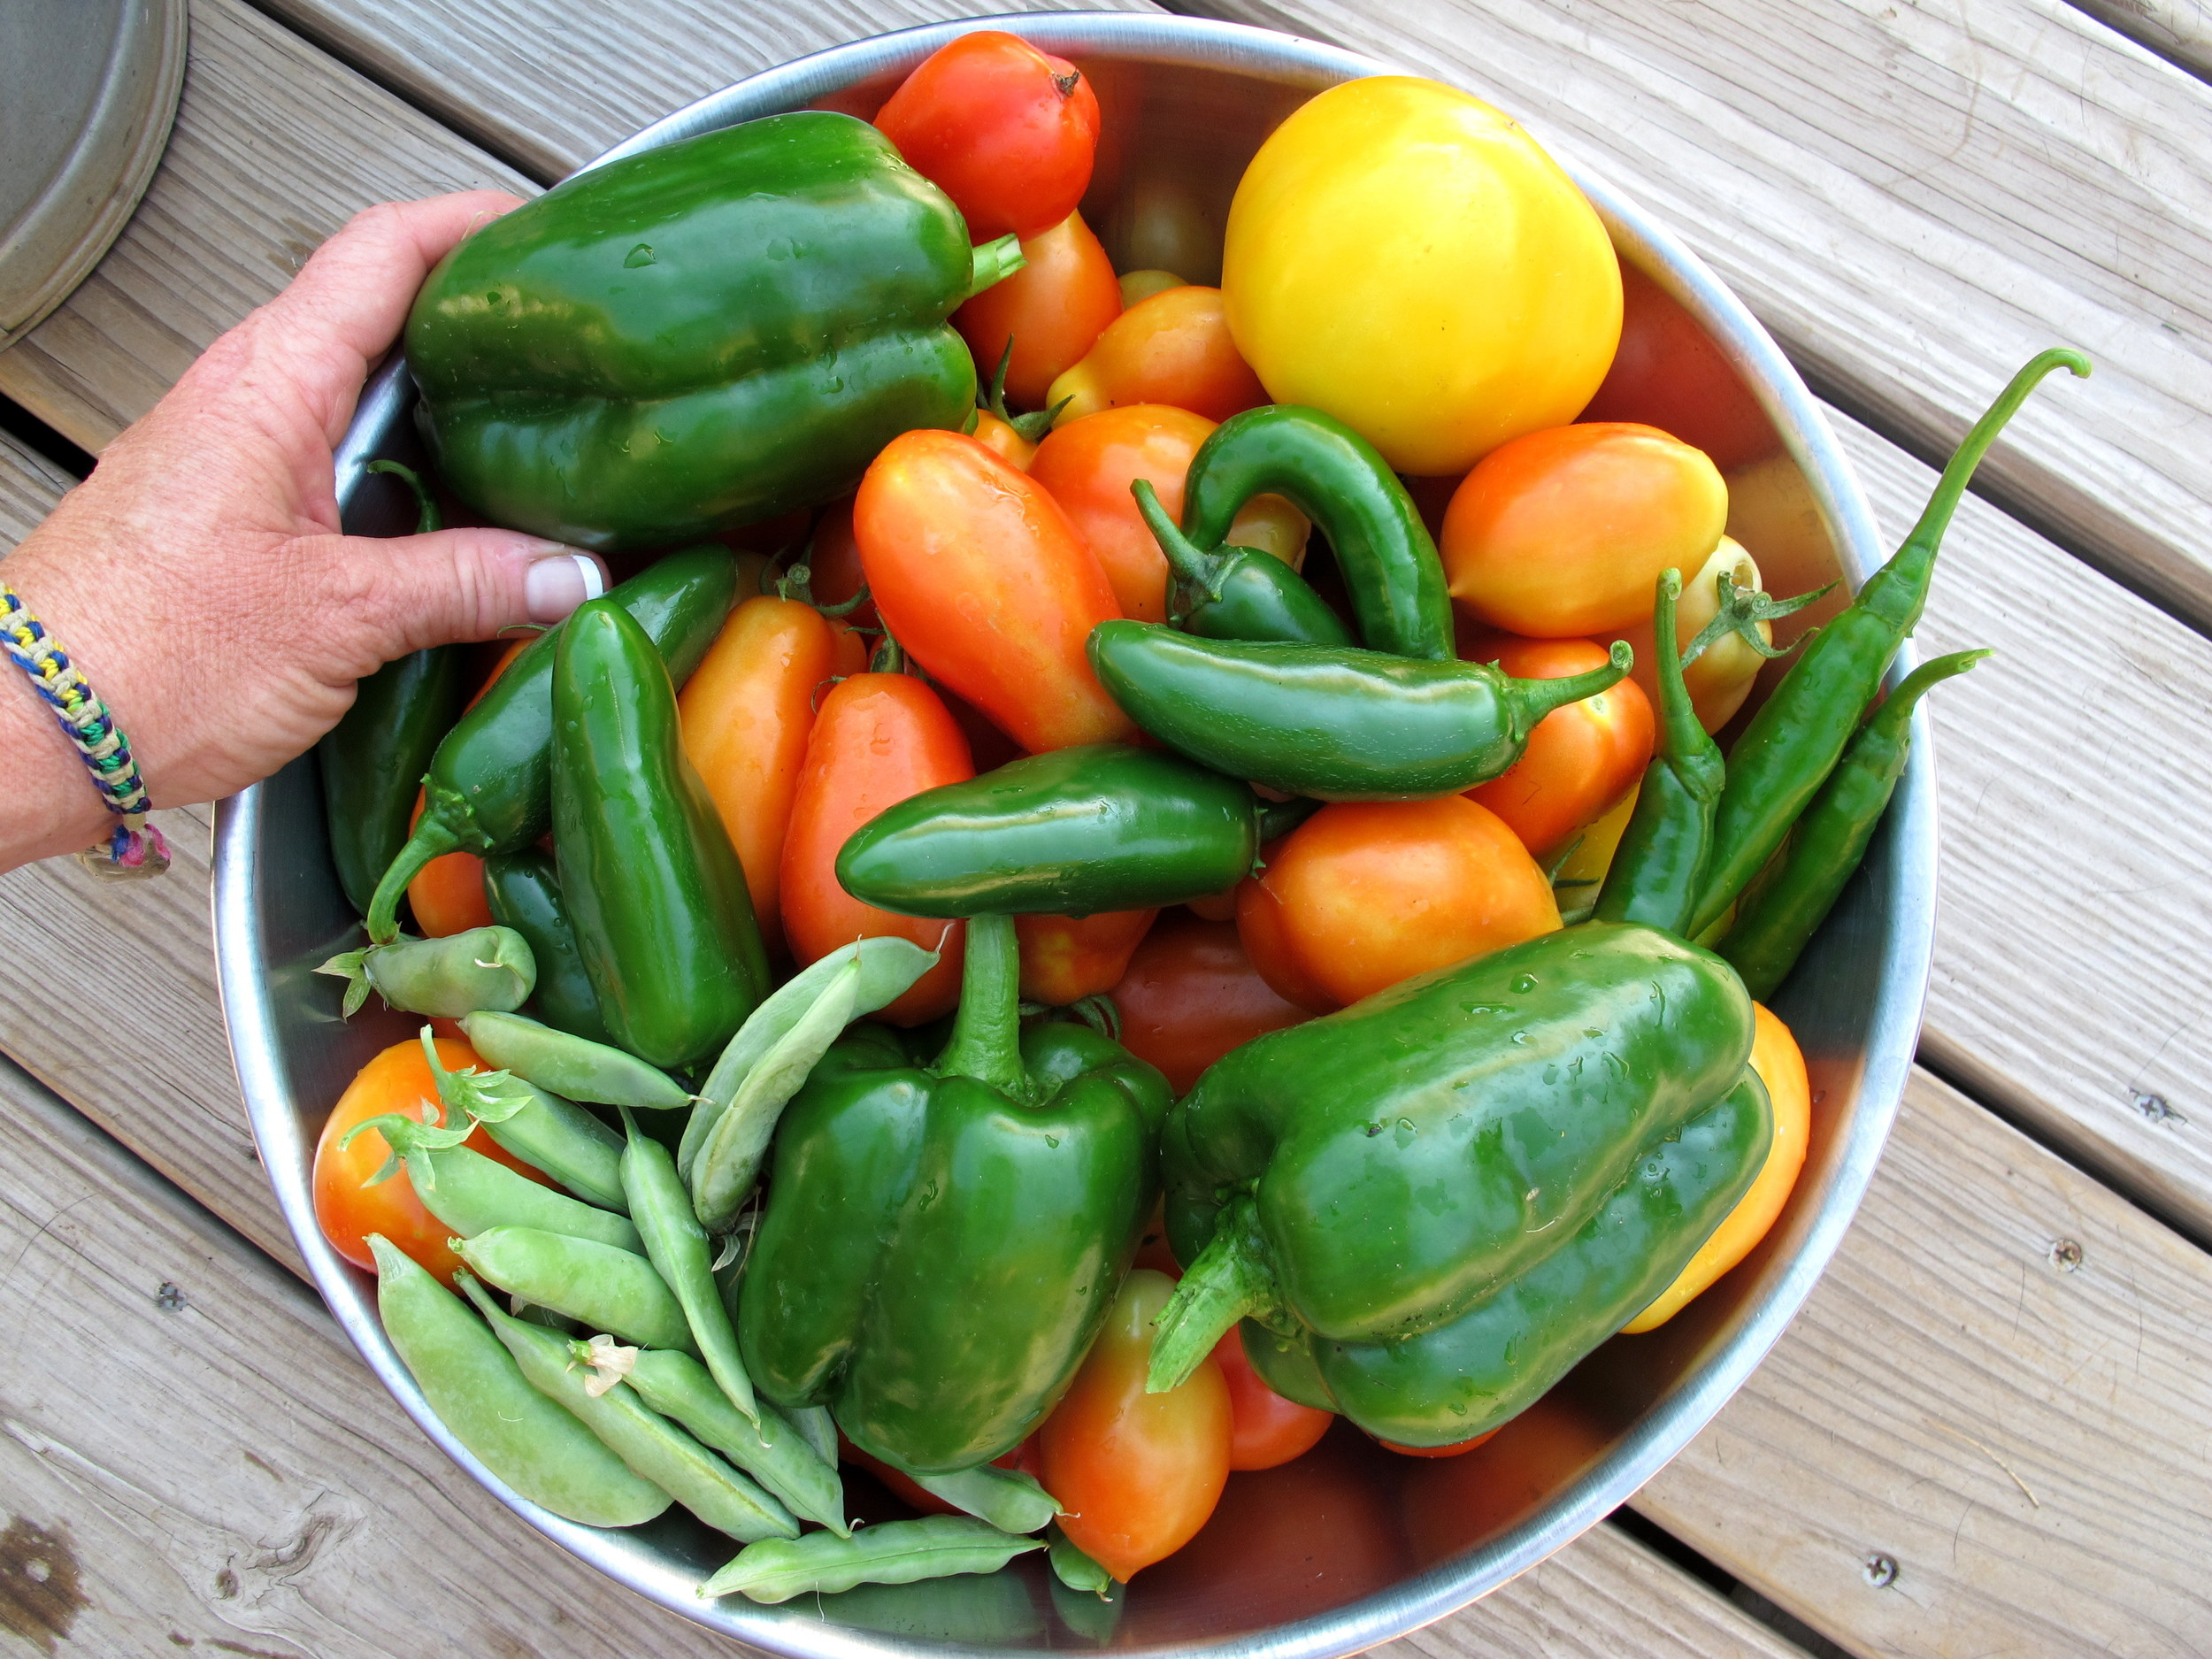 Summer Harvest  by OakleyOriginals/CC BY